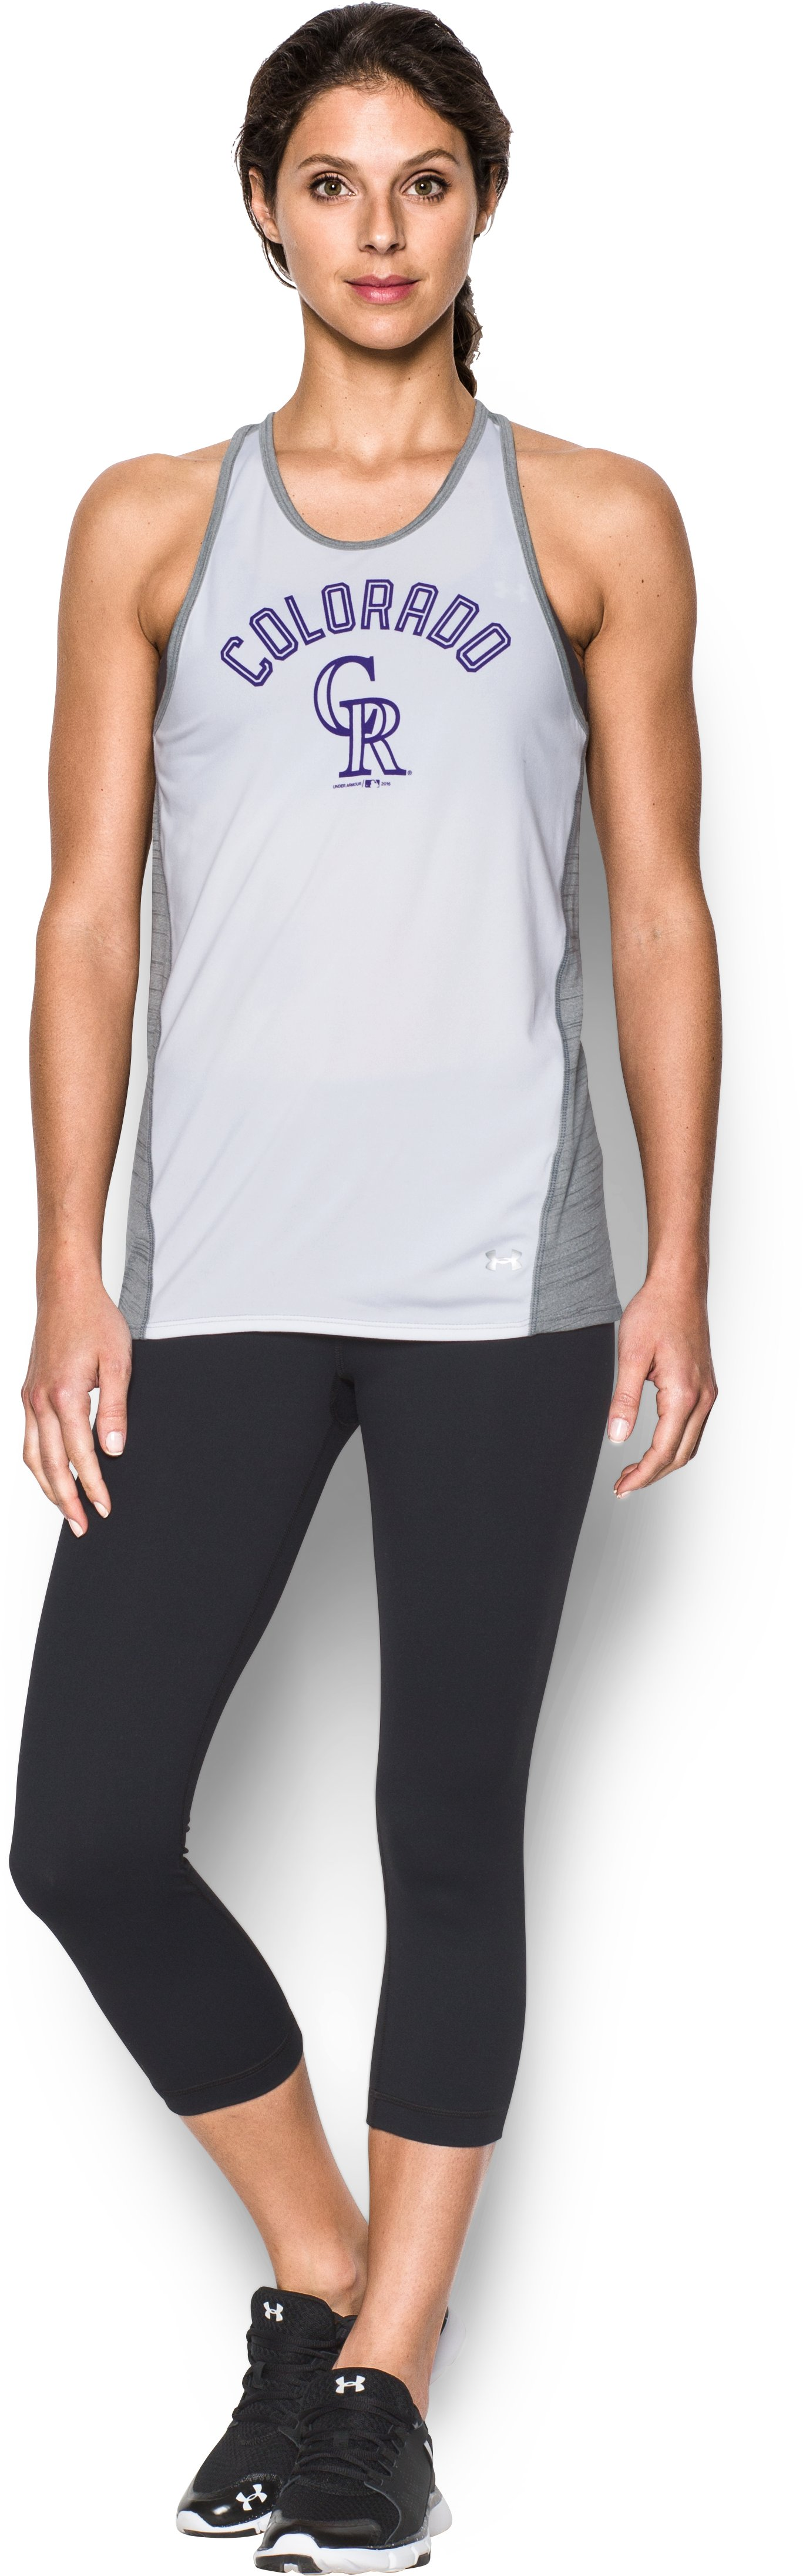 Women's Colorado Rockies UA Tech™ Tank, White, zoomed image